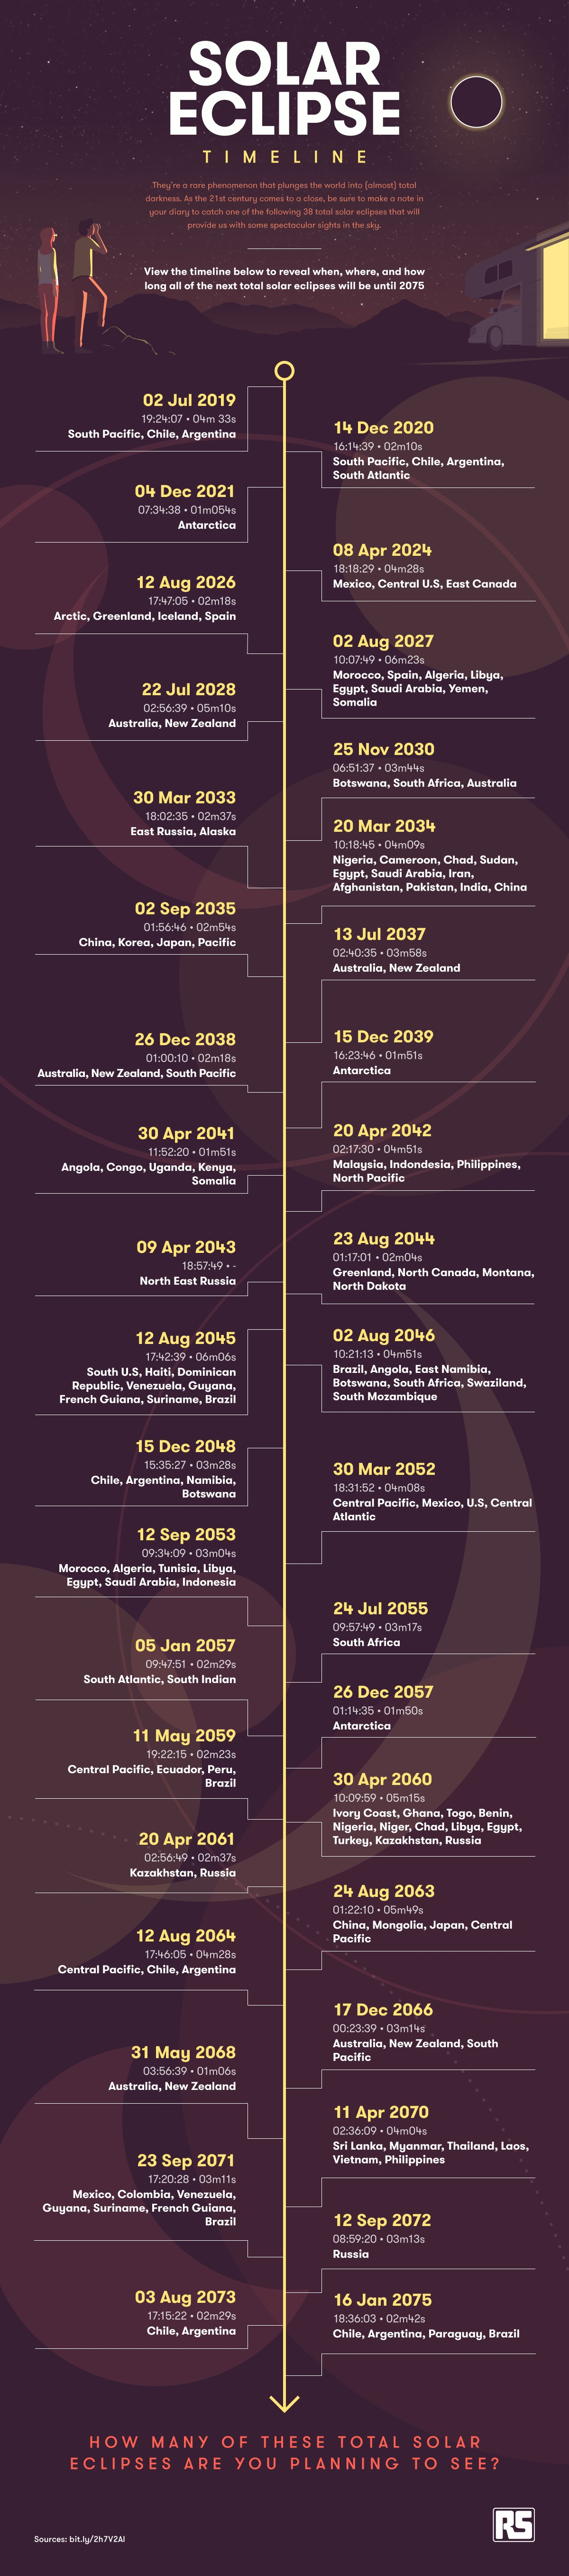 List Of Total Solar Eclipses Through 2075